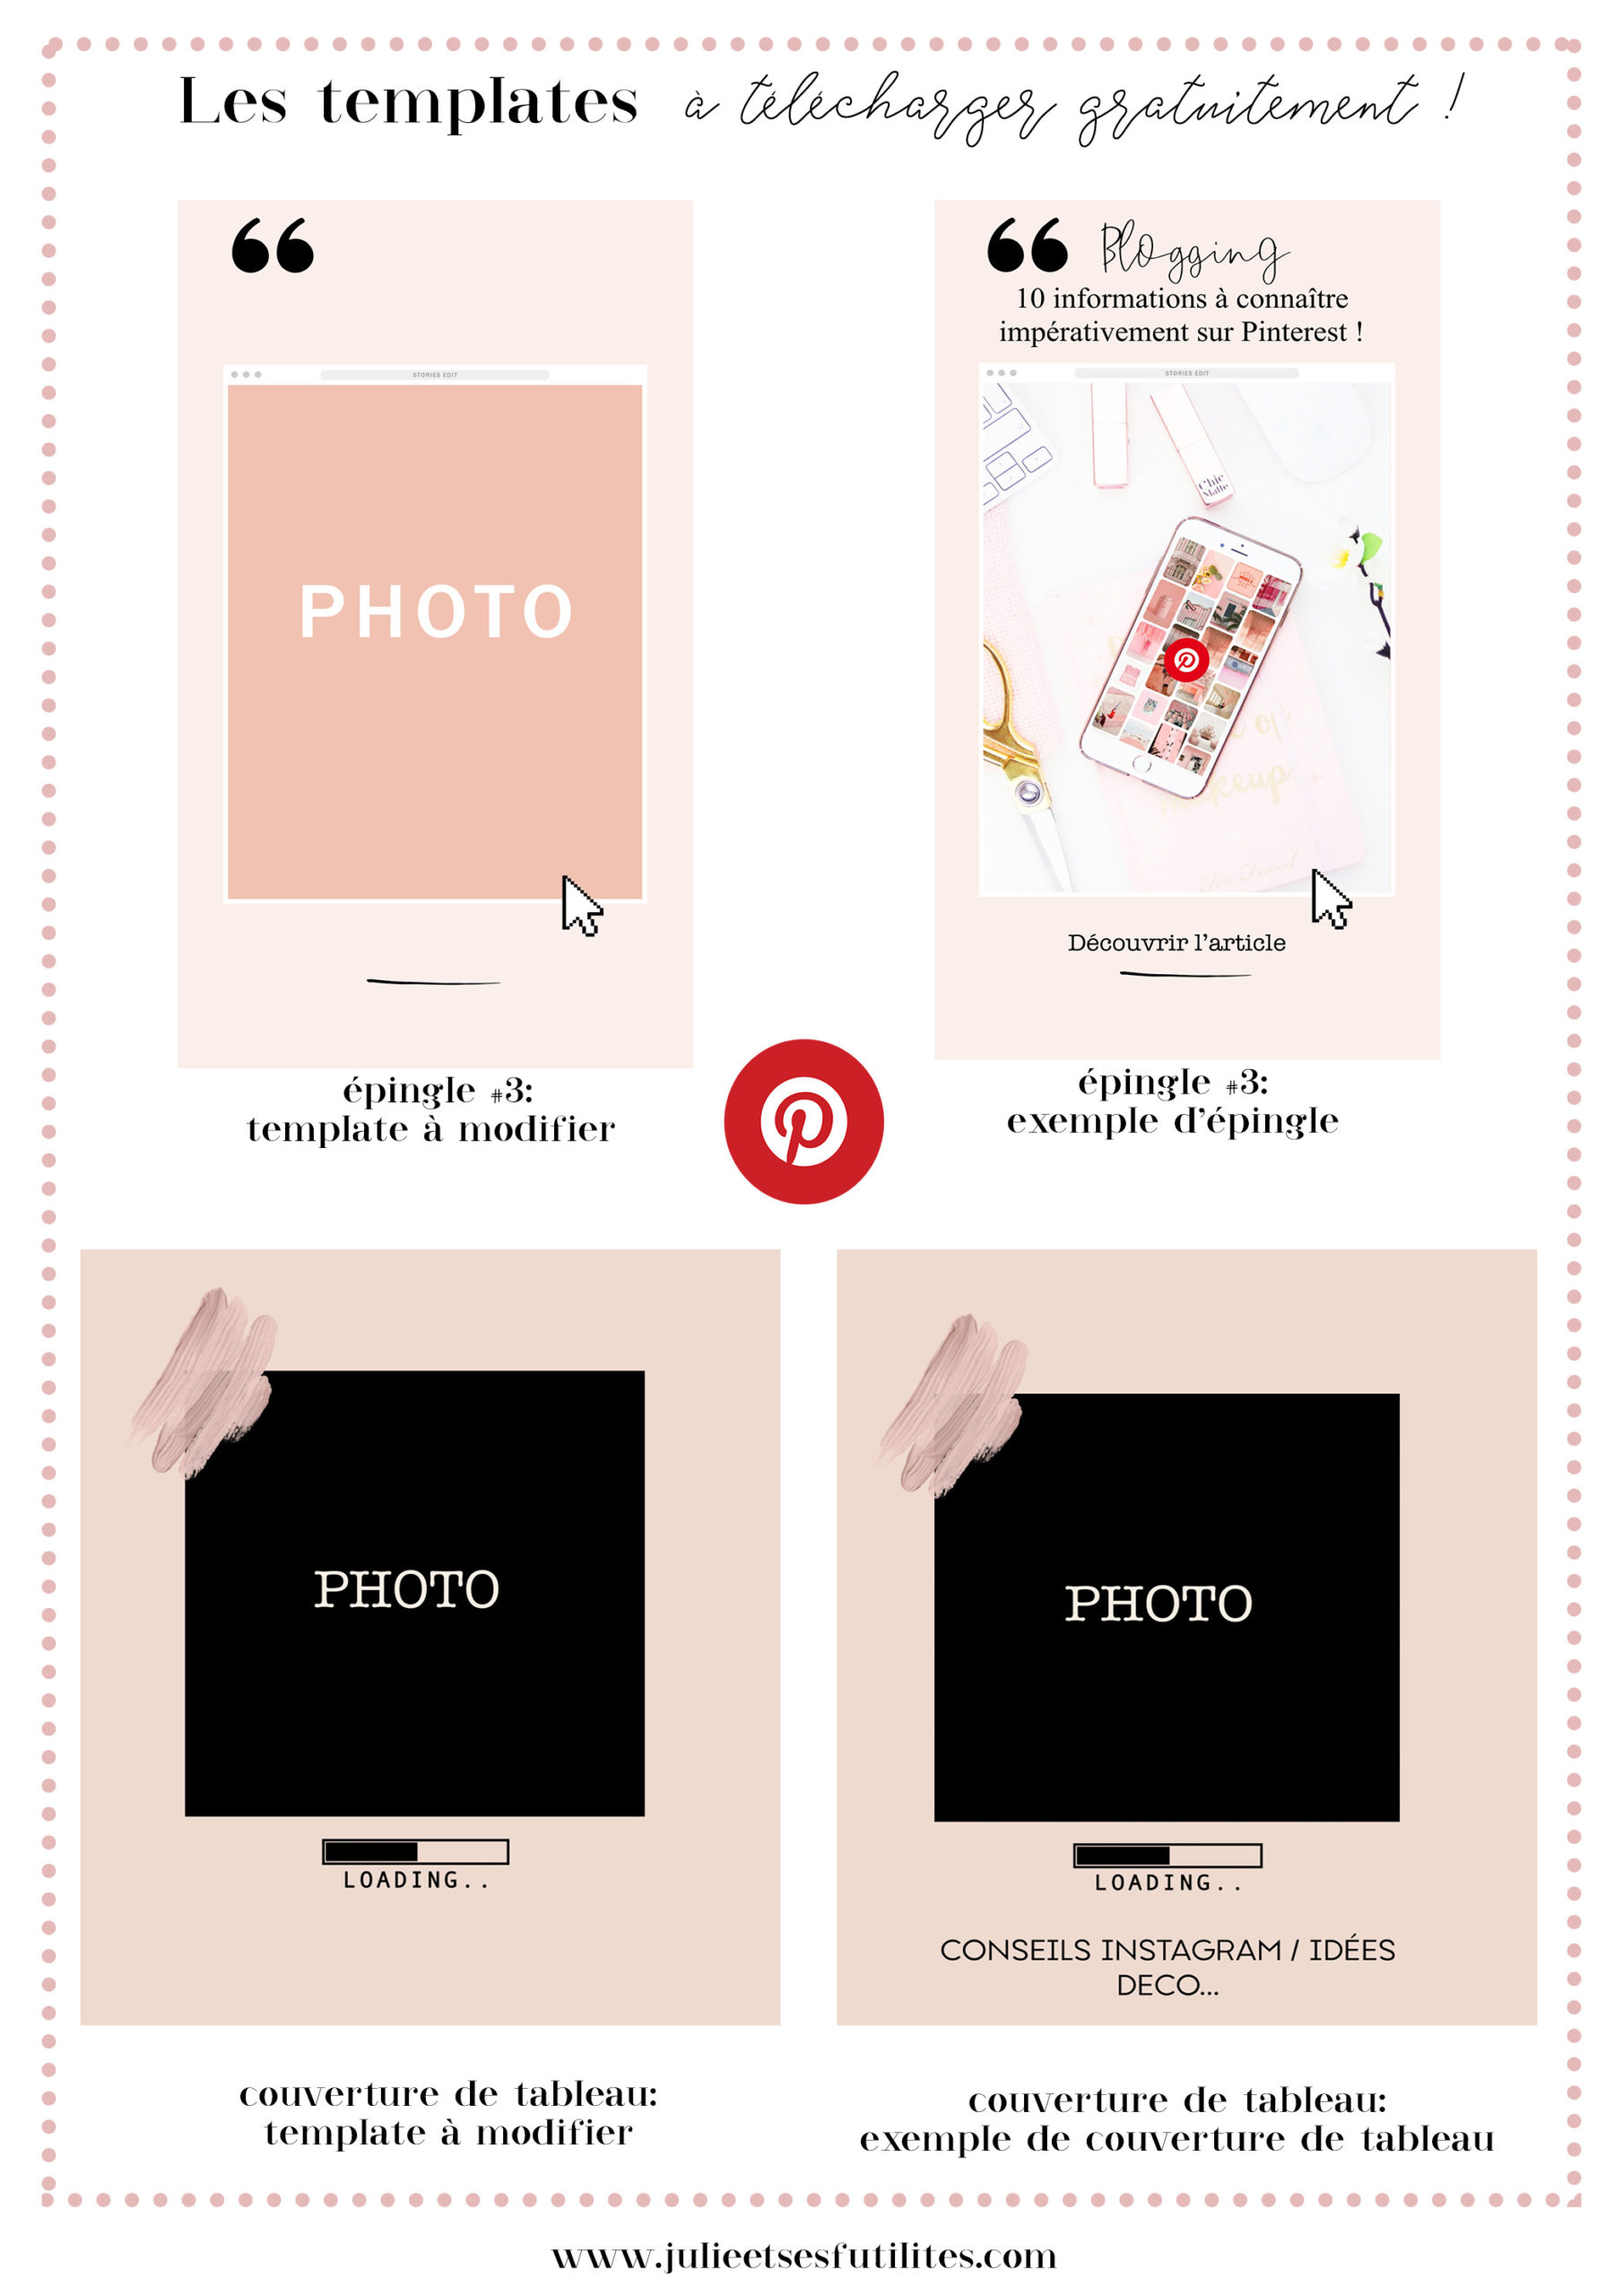 templates-pinterest-gratuit-a-telecharger